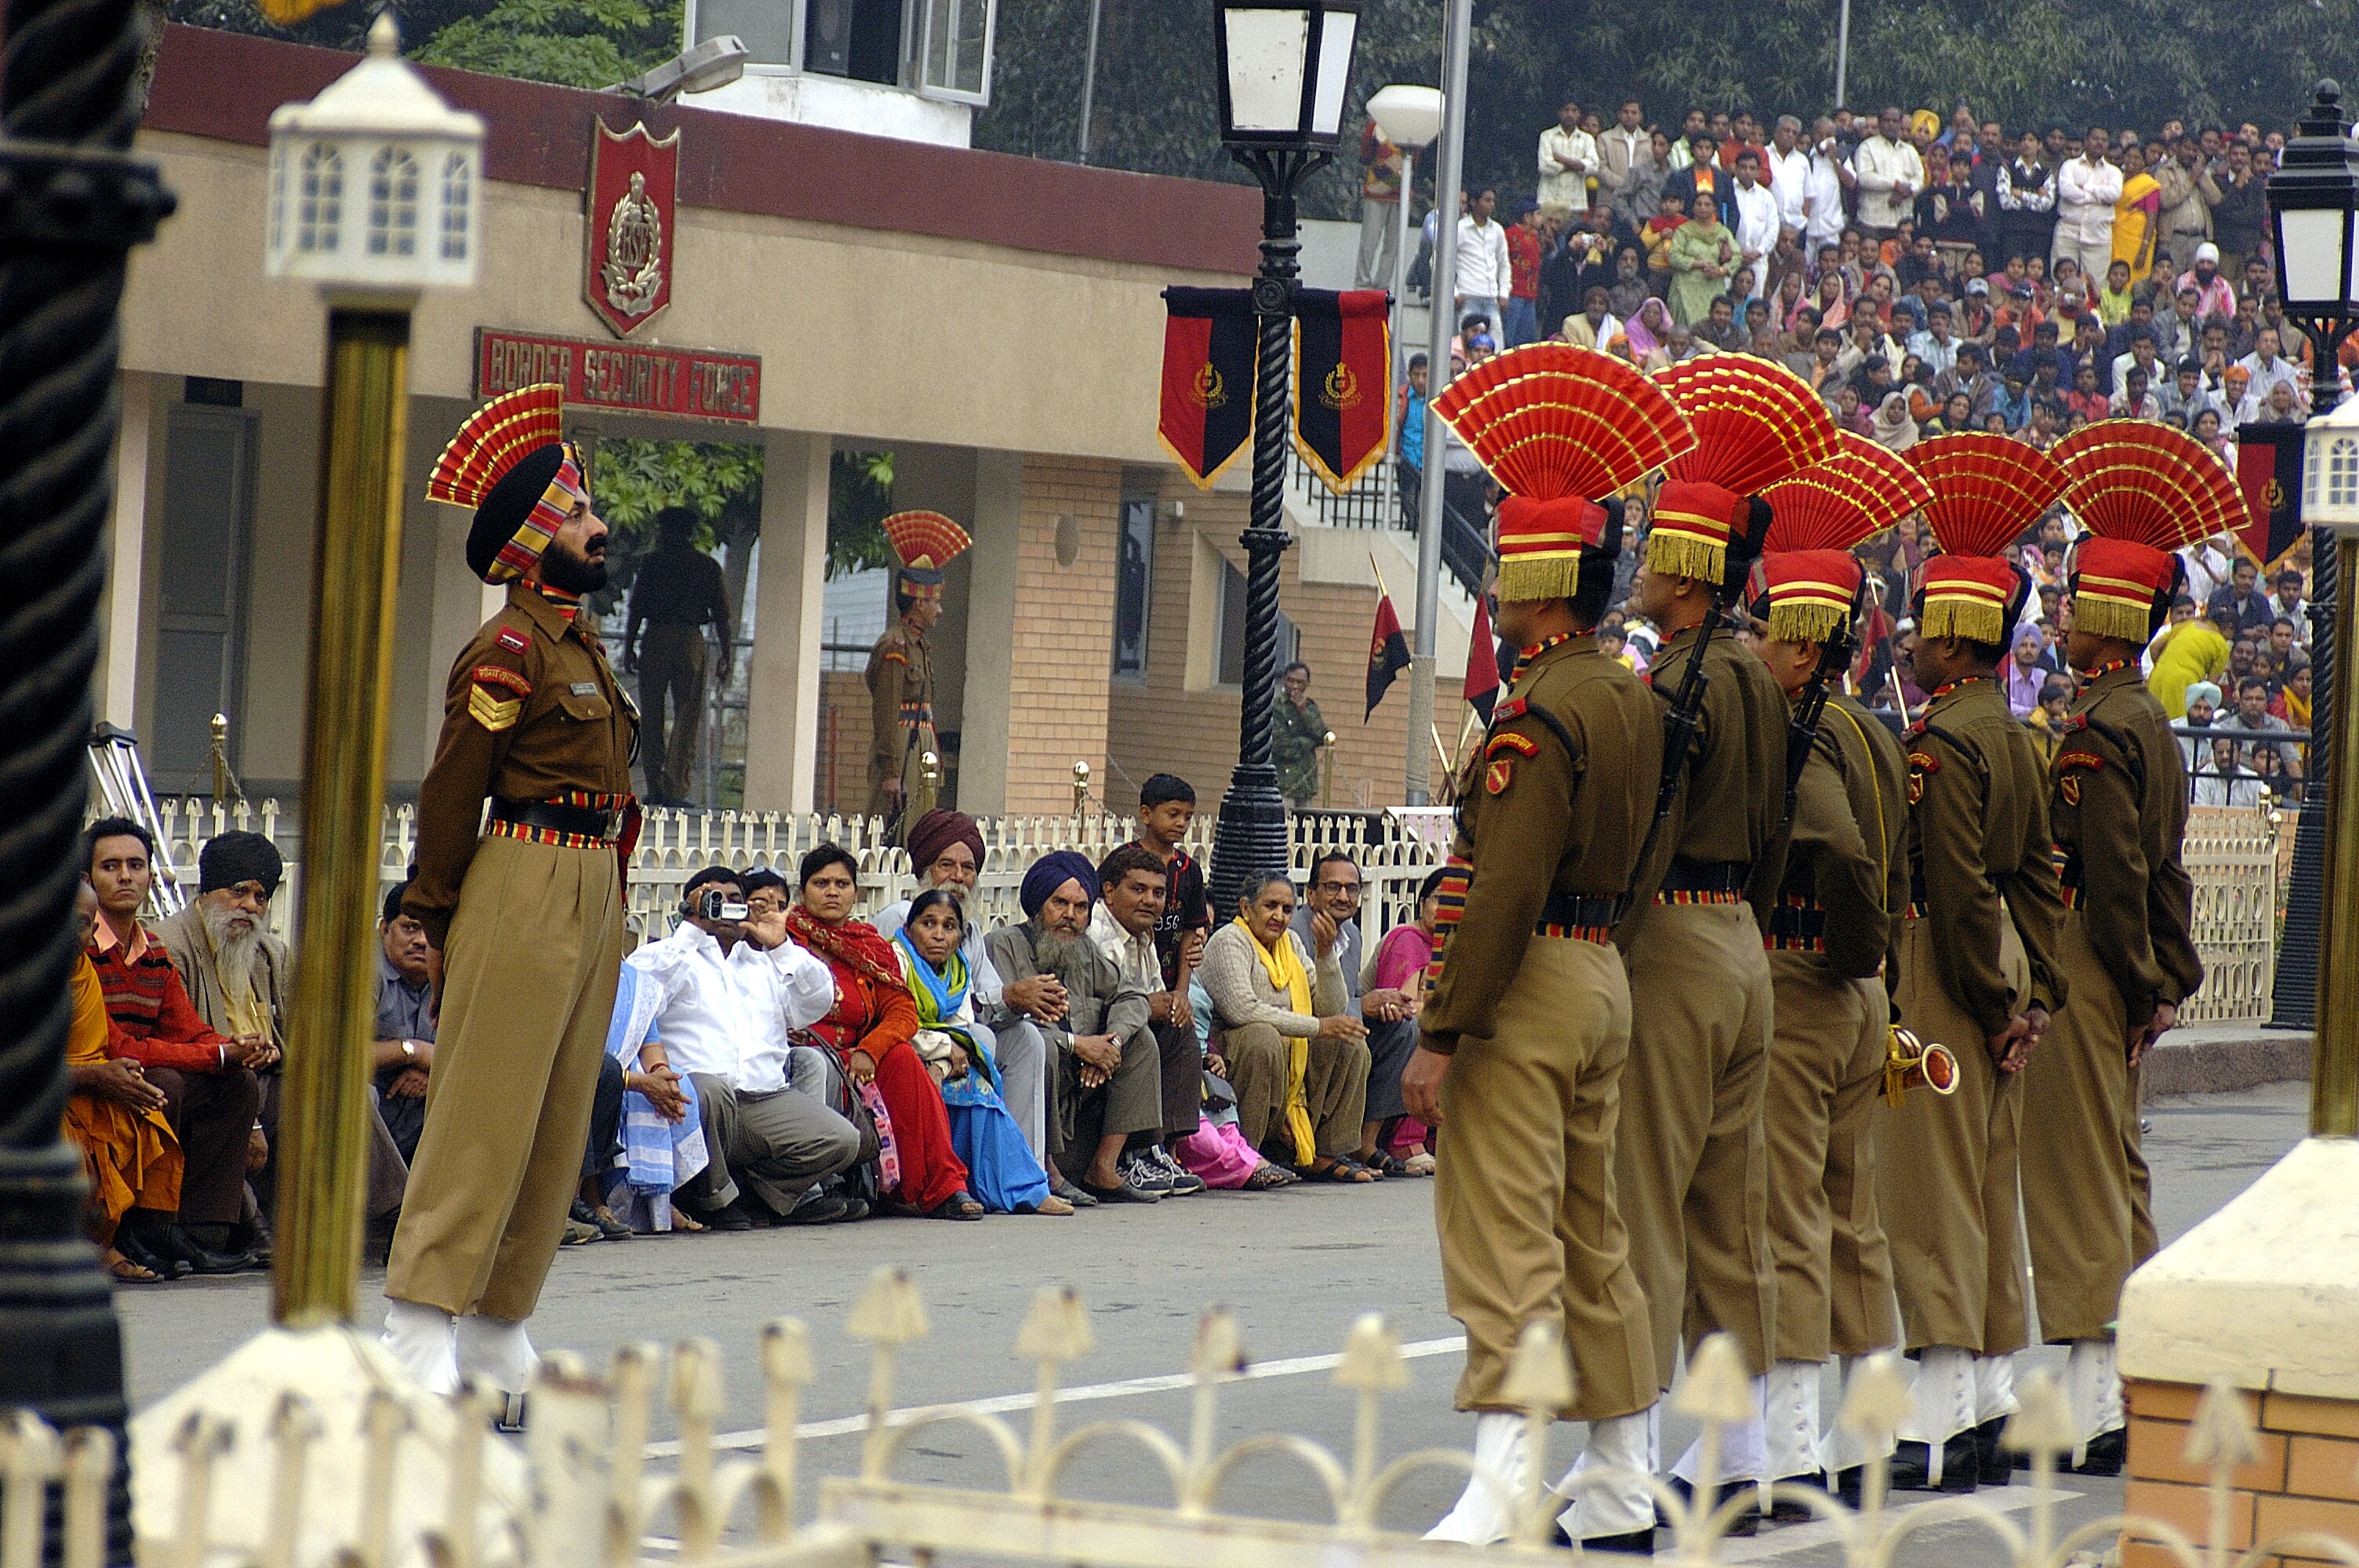 Wagah border india - things to do in India